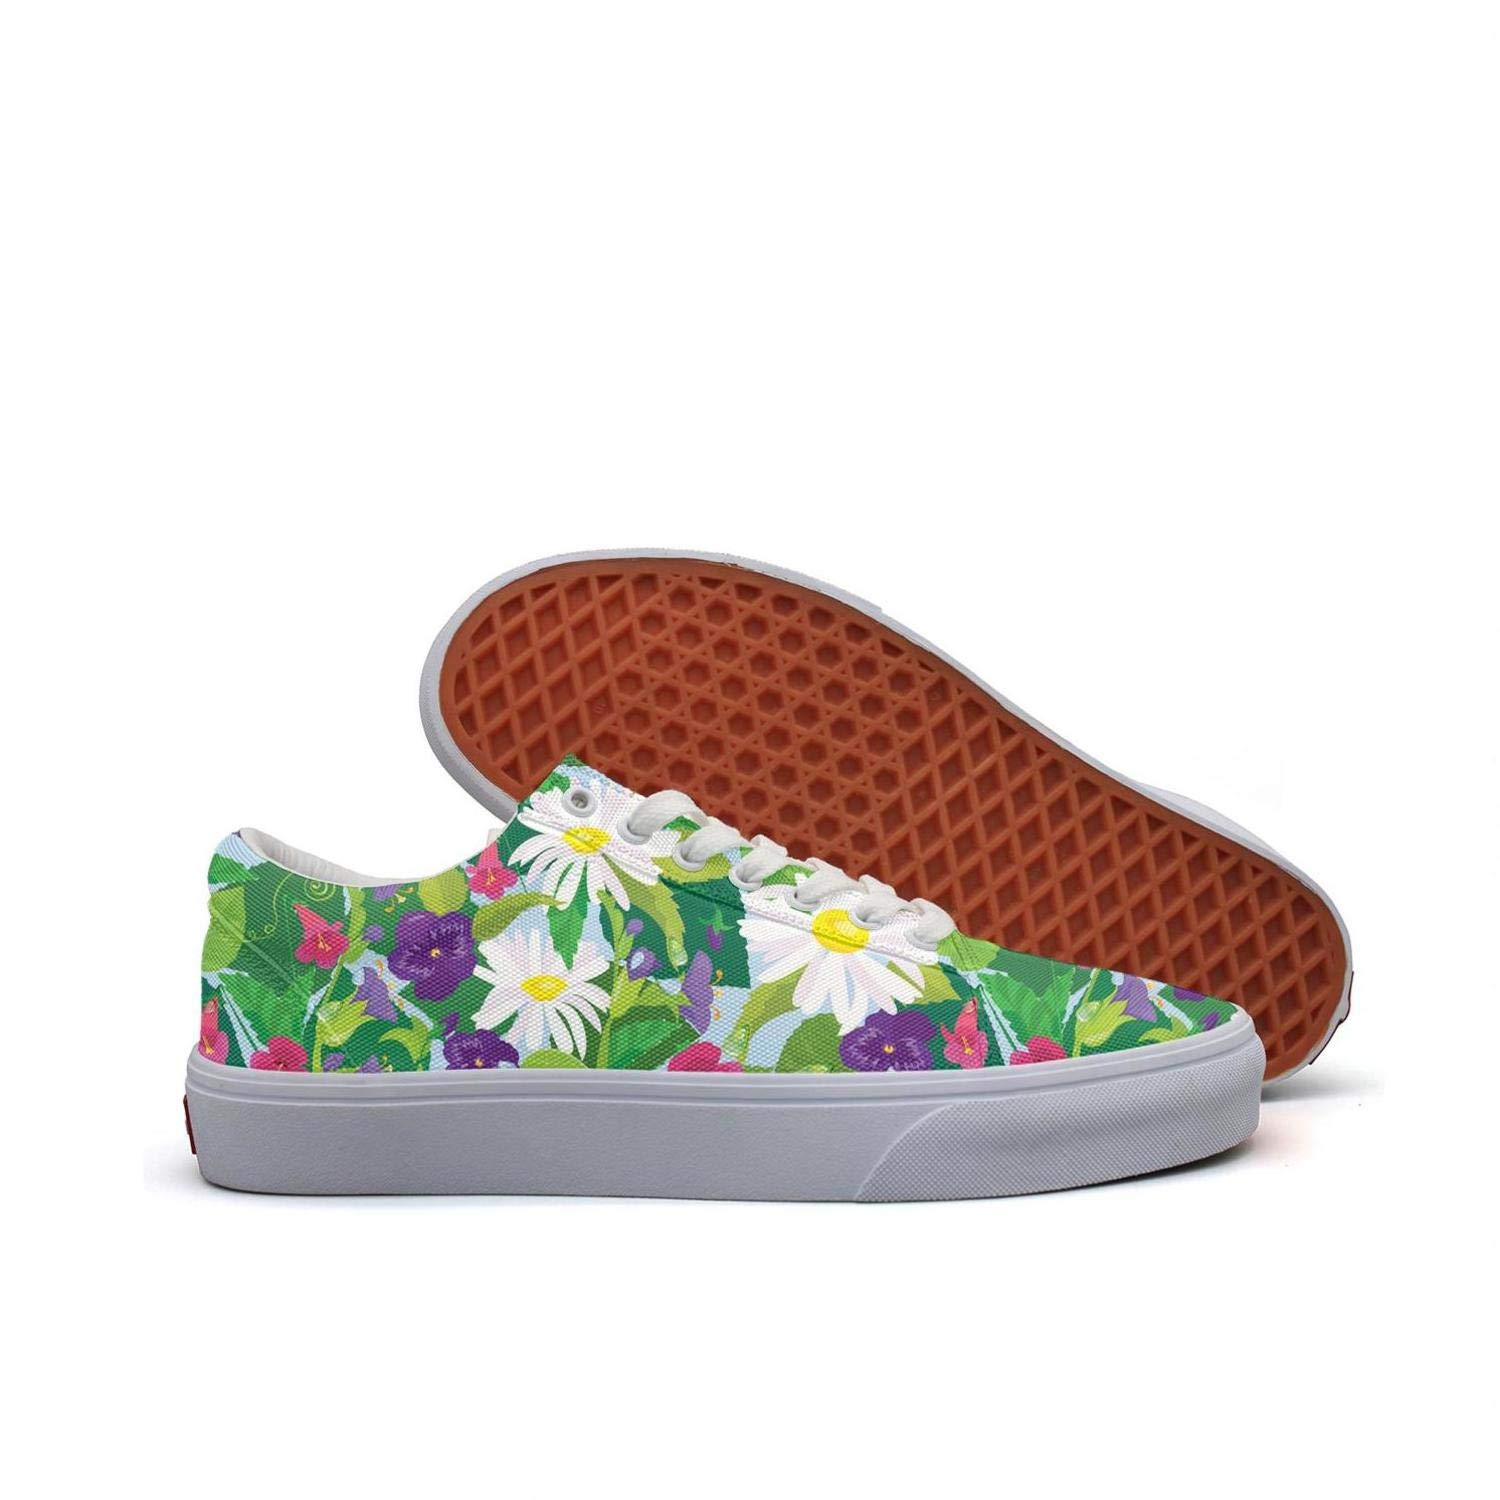 FGBLK Lace Canvas Beautiful Flowers with Mini Live Pansies Womens Sneakers Non-Slip Flat Skater Trainers